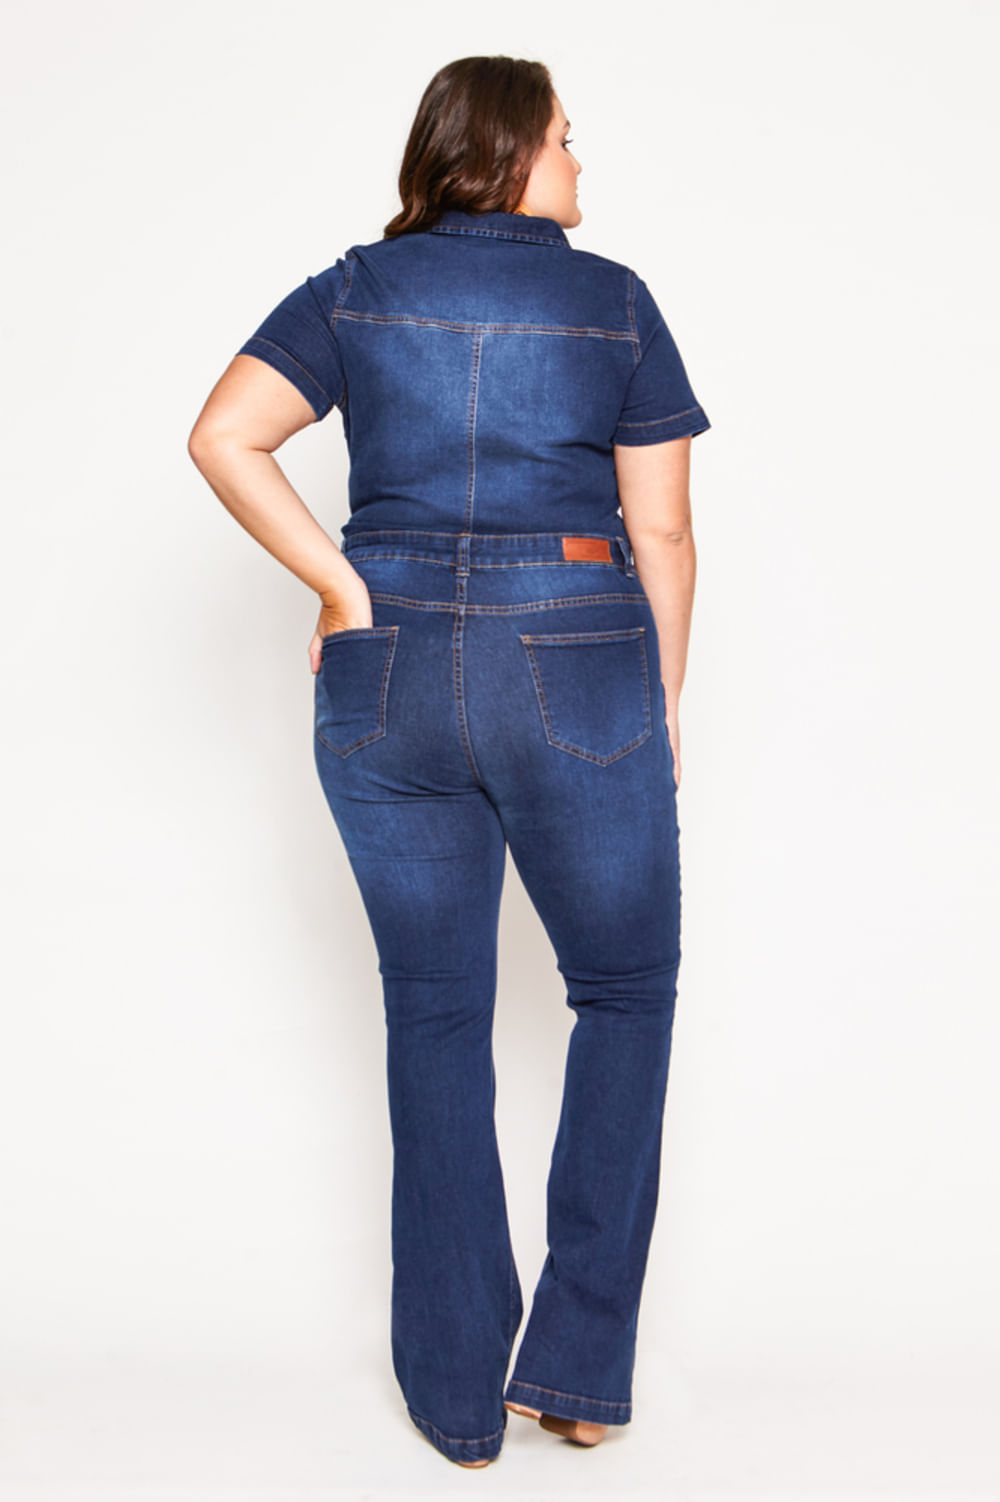 0910317_Macacao_Jeans_Plus_Size_Helen_4